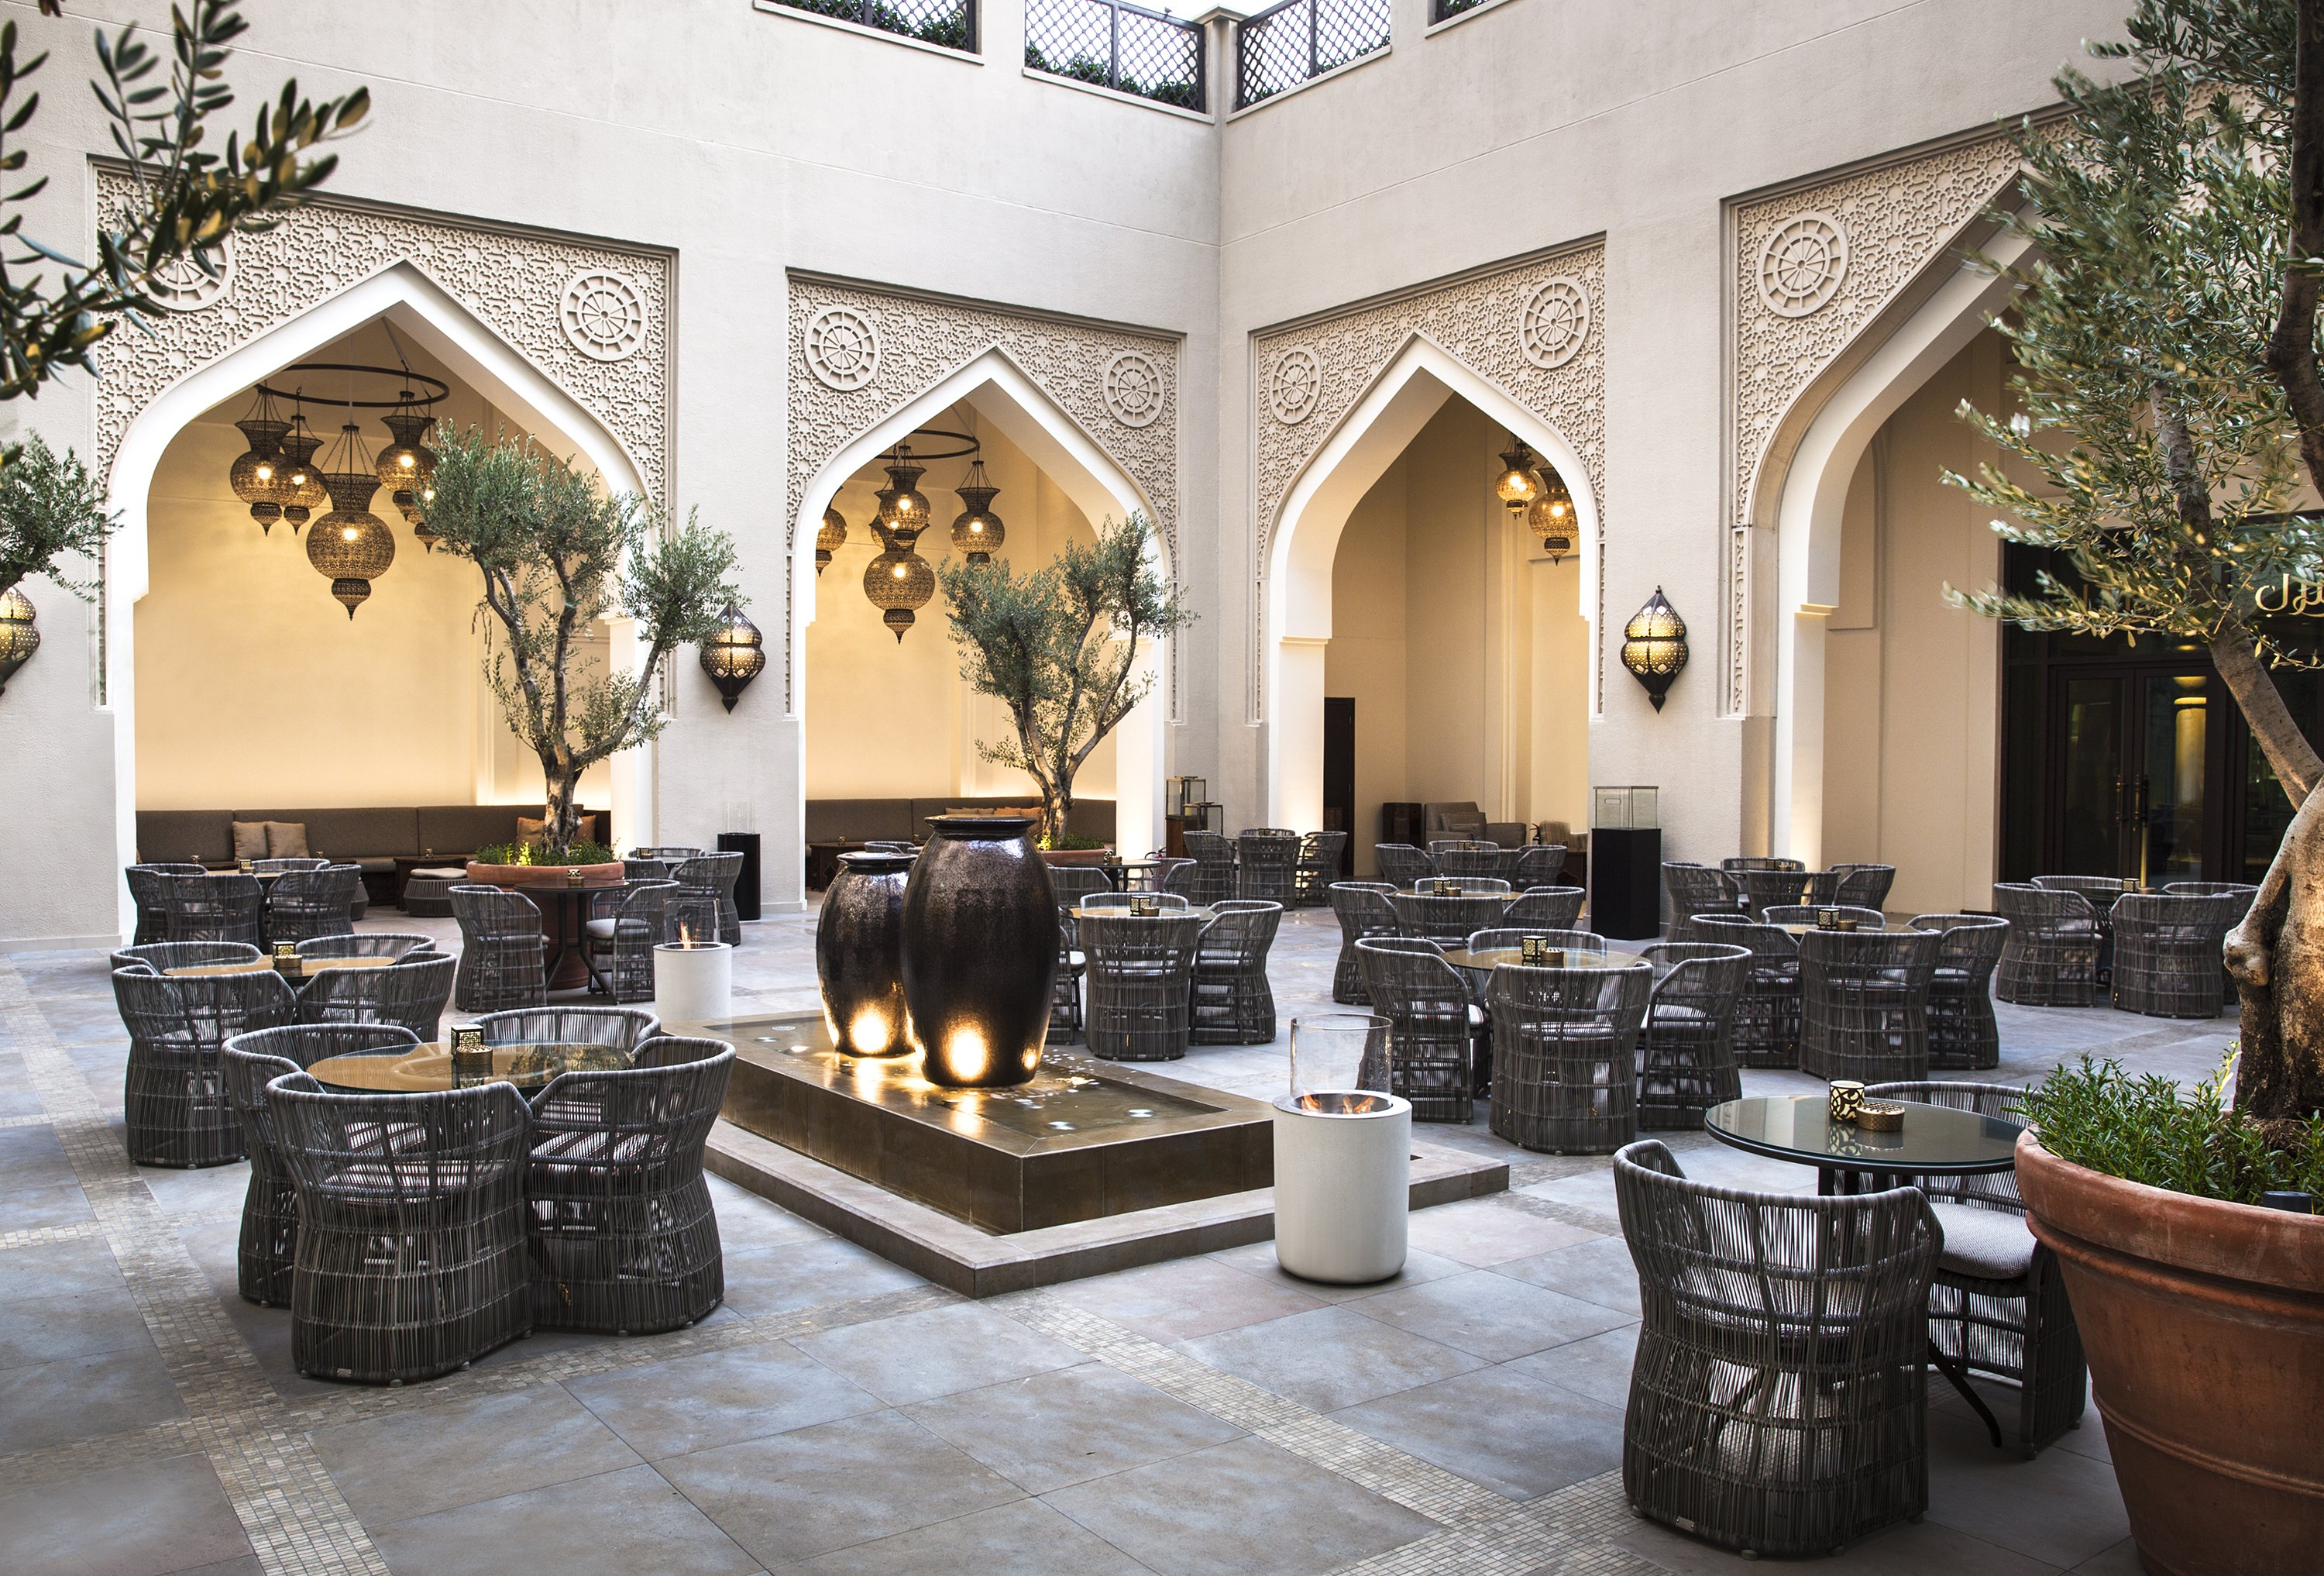 An Exotic Trip Into The Arabian Dining Experience At The Courtyard…